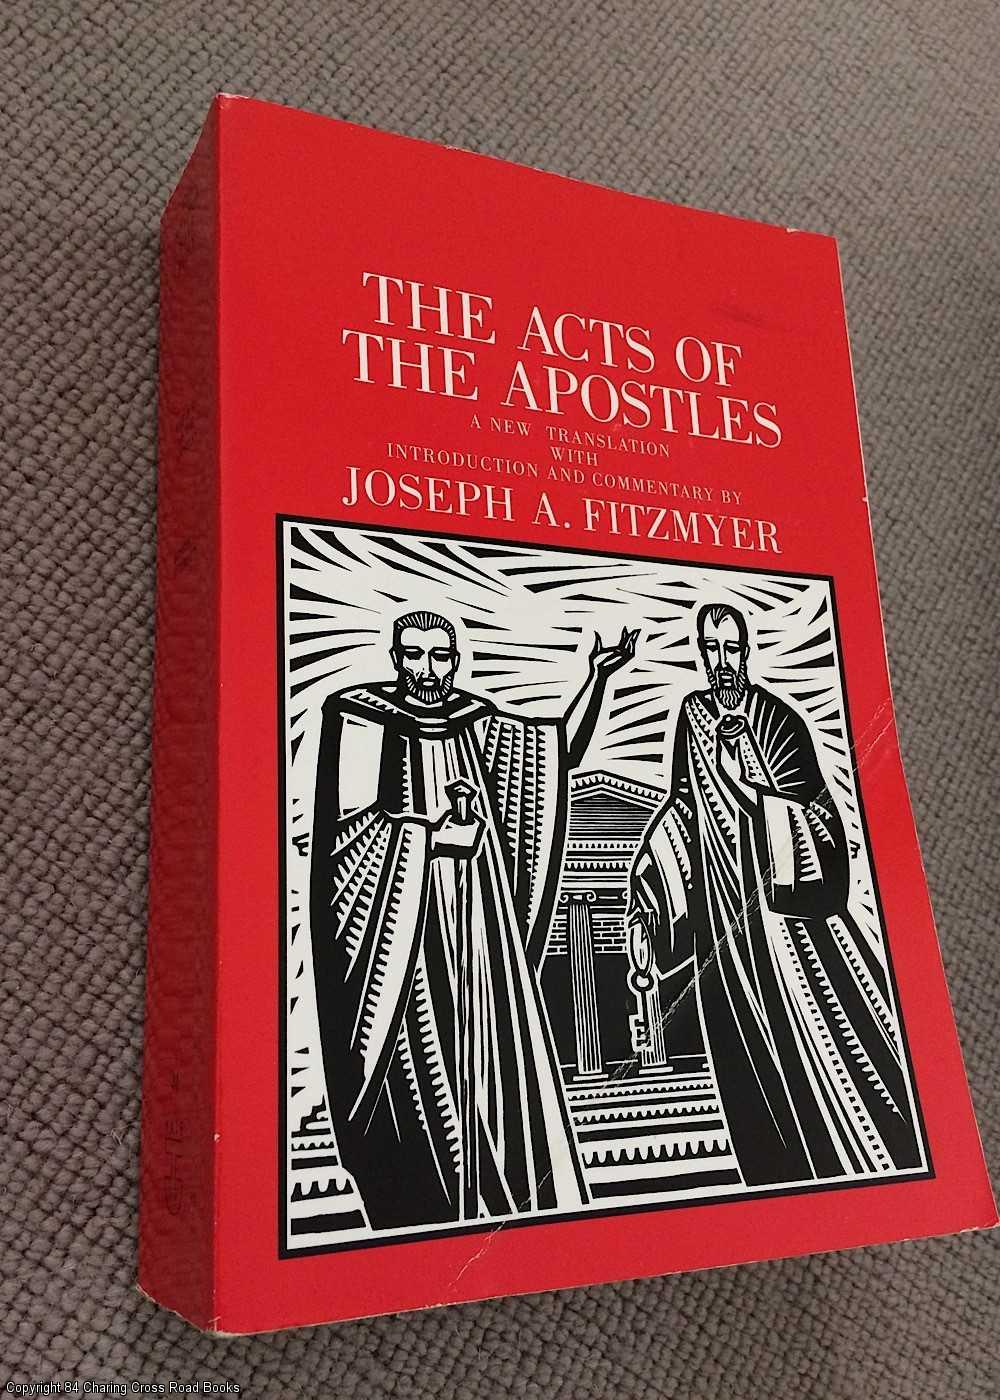 FITZMYER, JOSEPH - The Acts of the Apostles